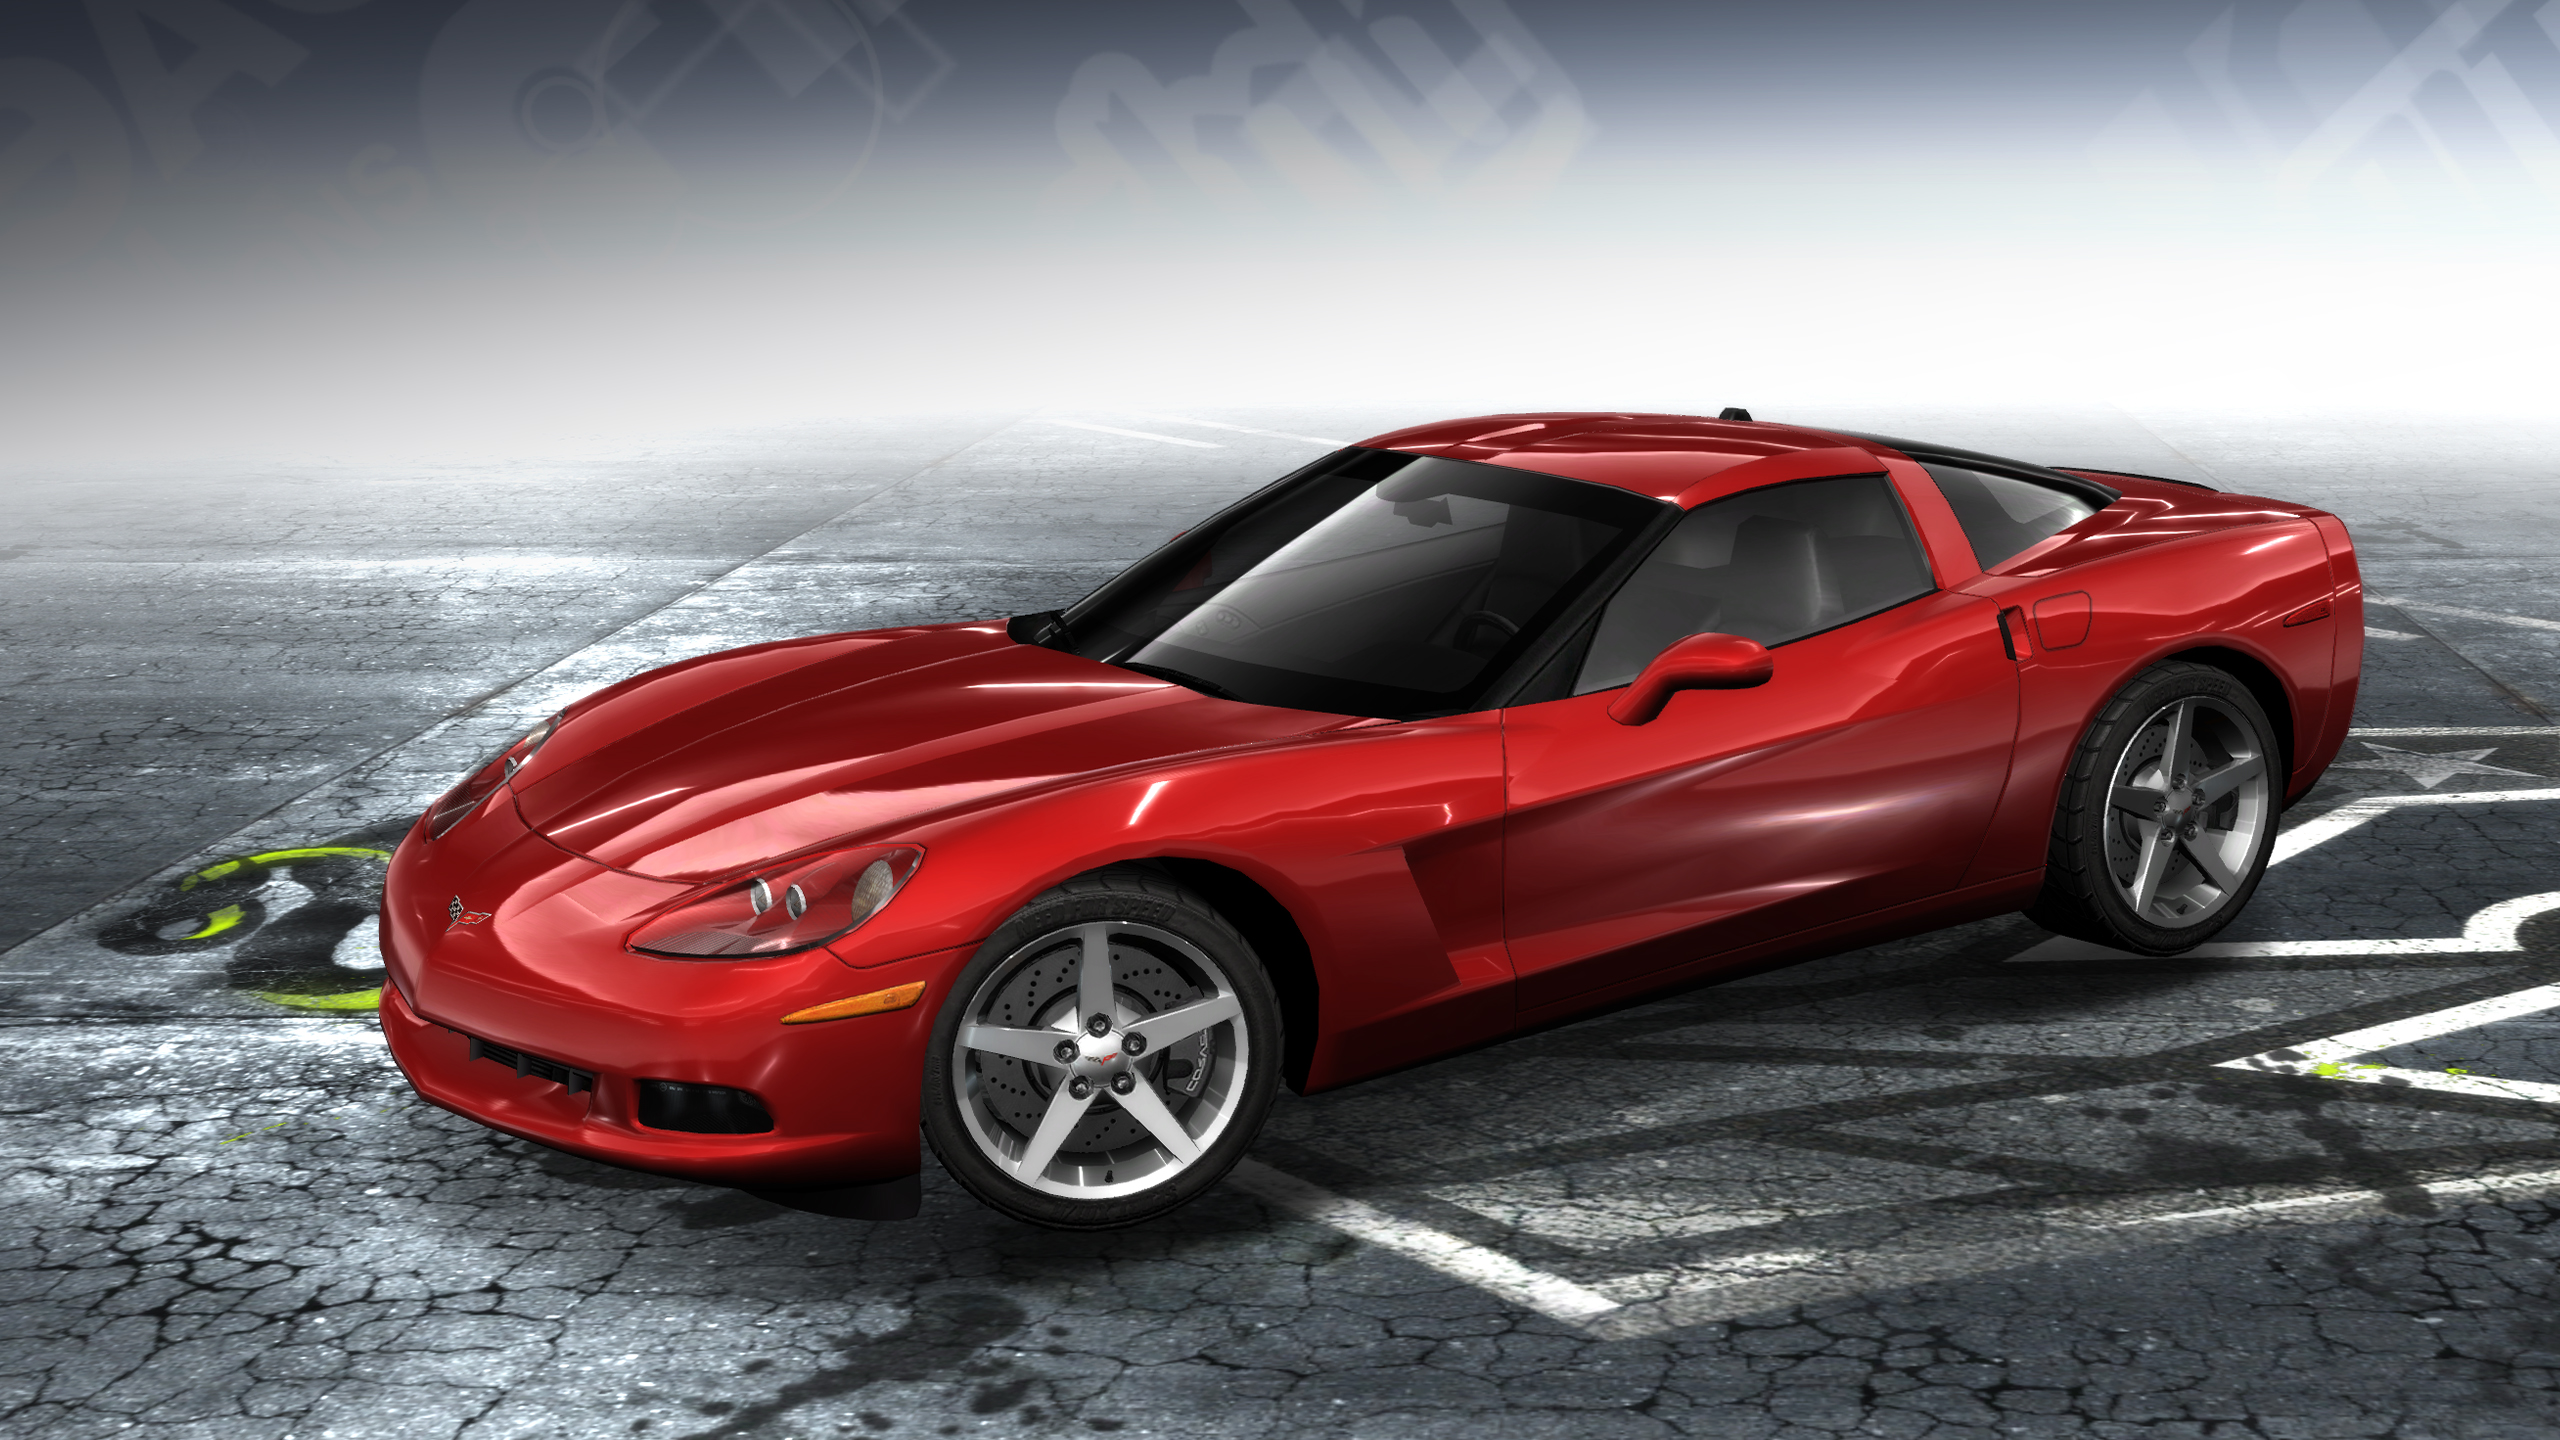 chevrolet corvette c6 need for speed wiki fandom powered by wikia. Black Bedroom Furniture Sets. Home Design Ideas